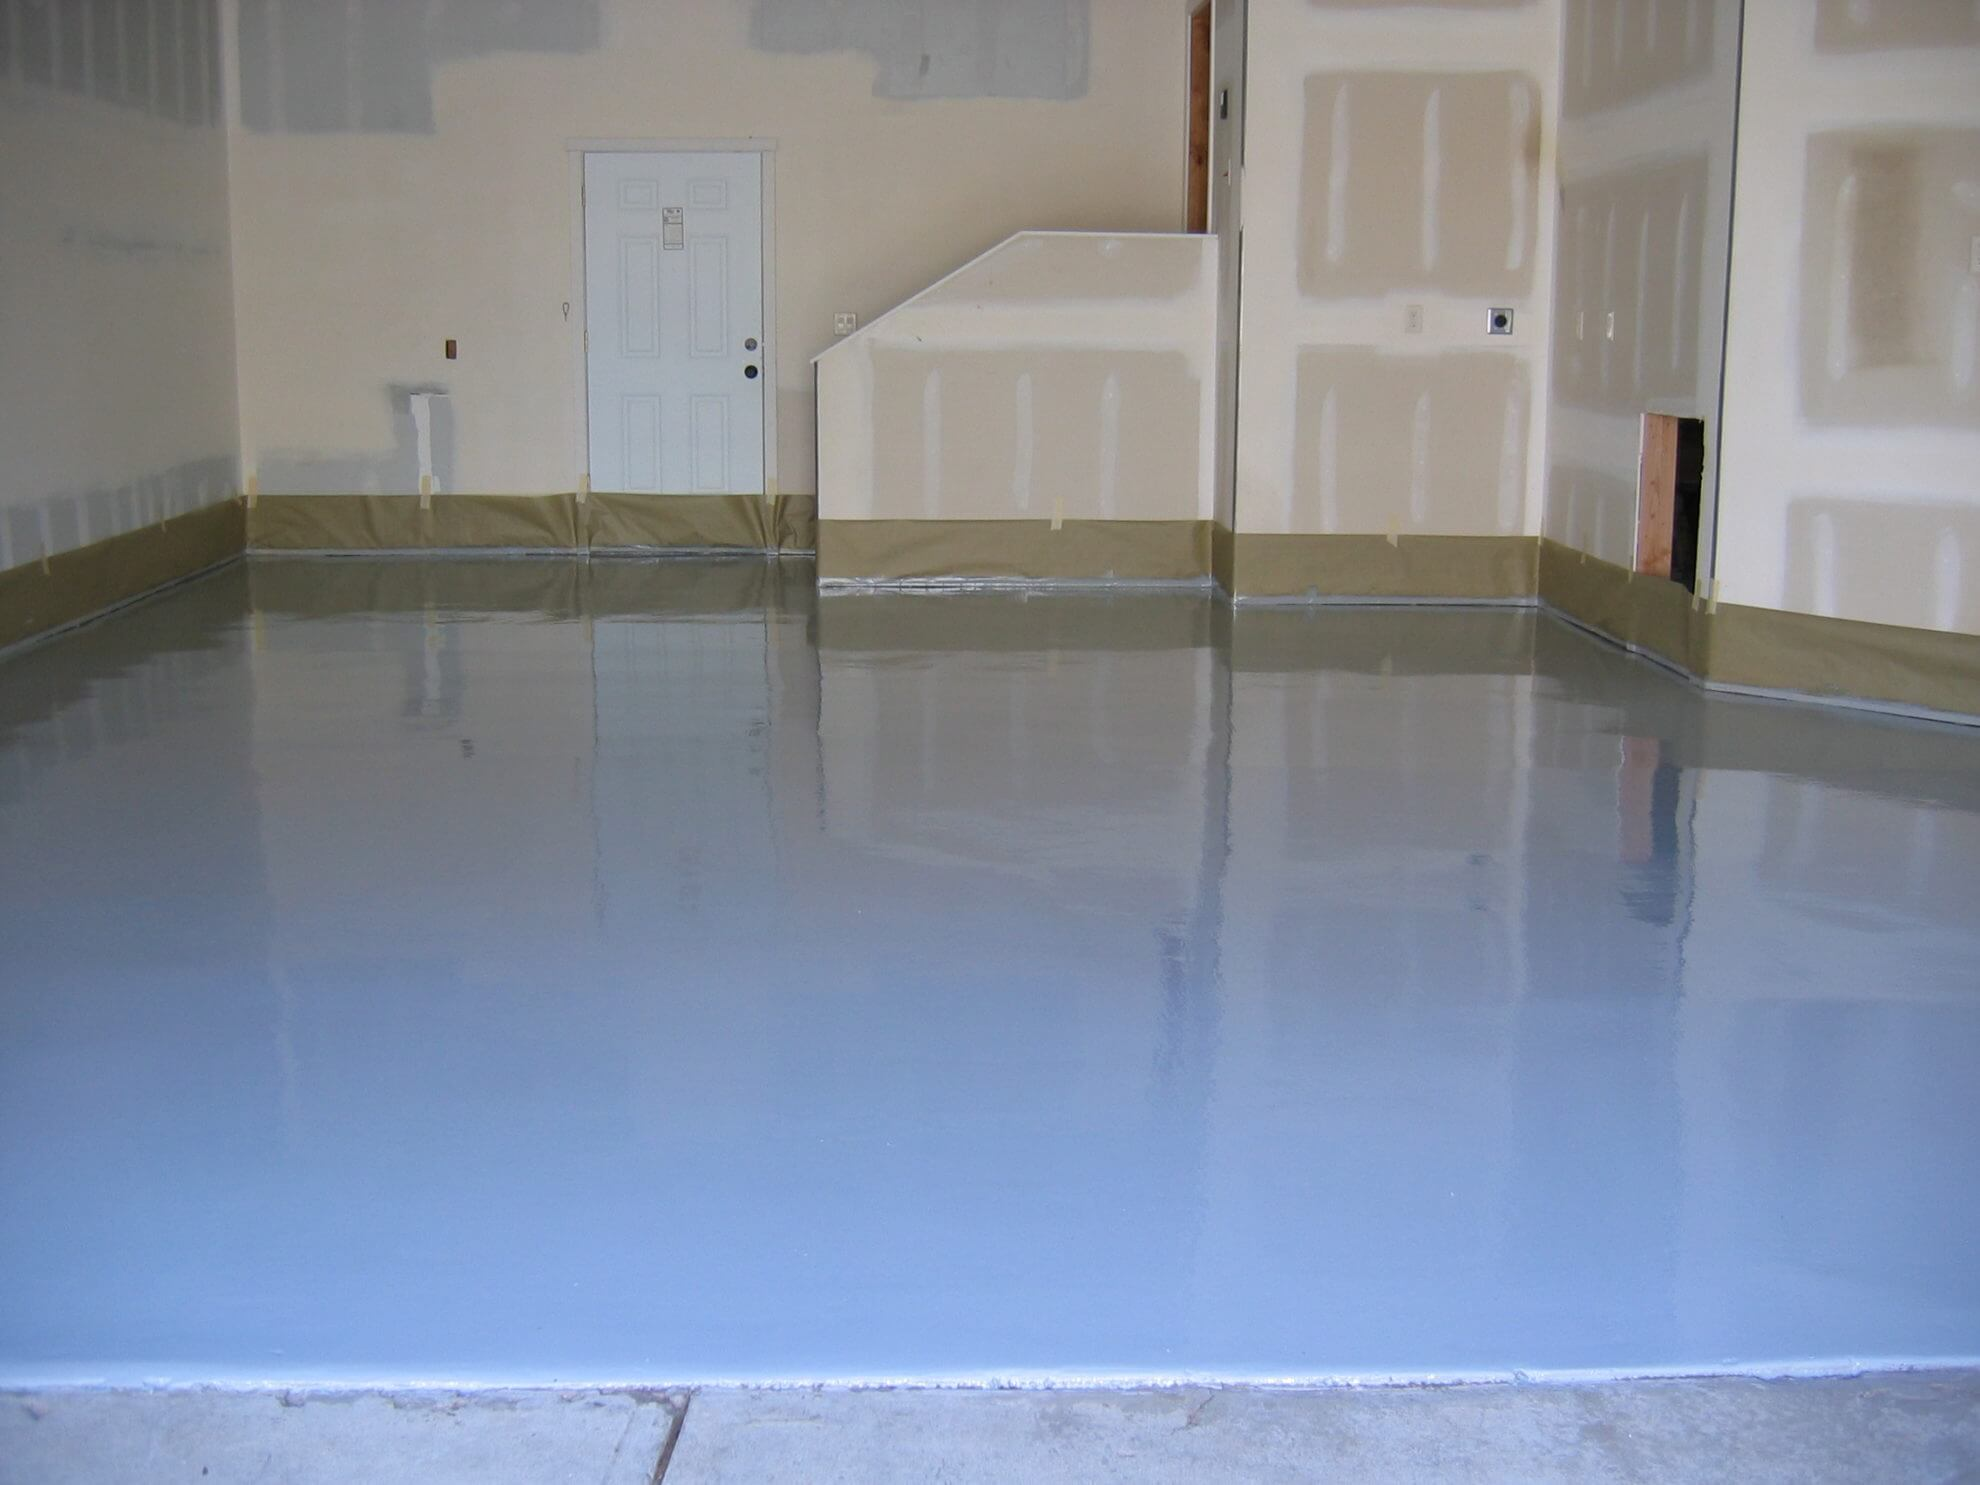 Saint george epoxy flooring and coatings in southern utah garage dolphin gray solutioingenieria Choice Image